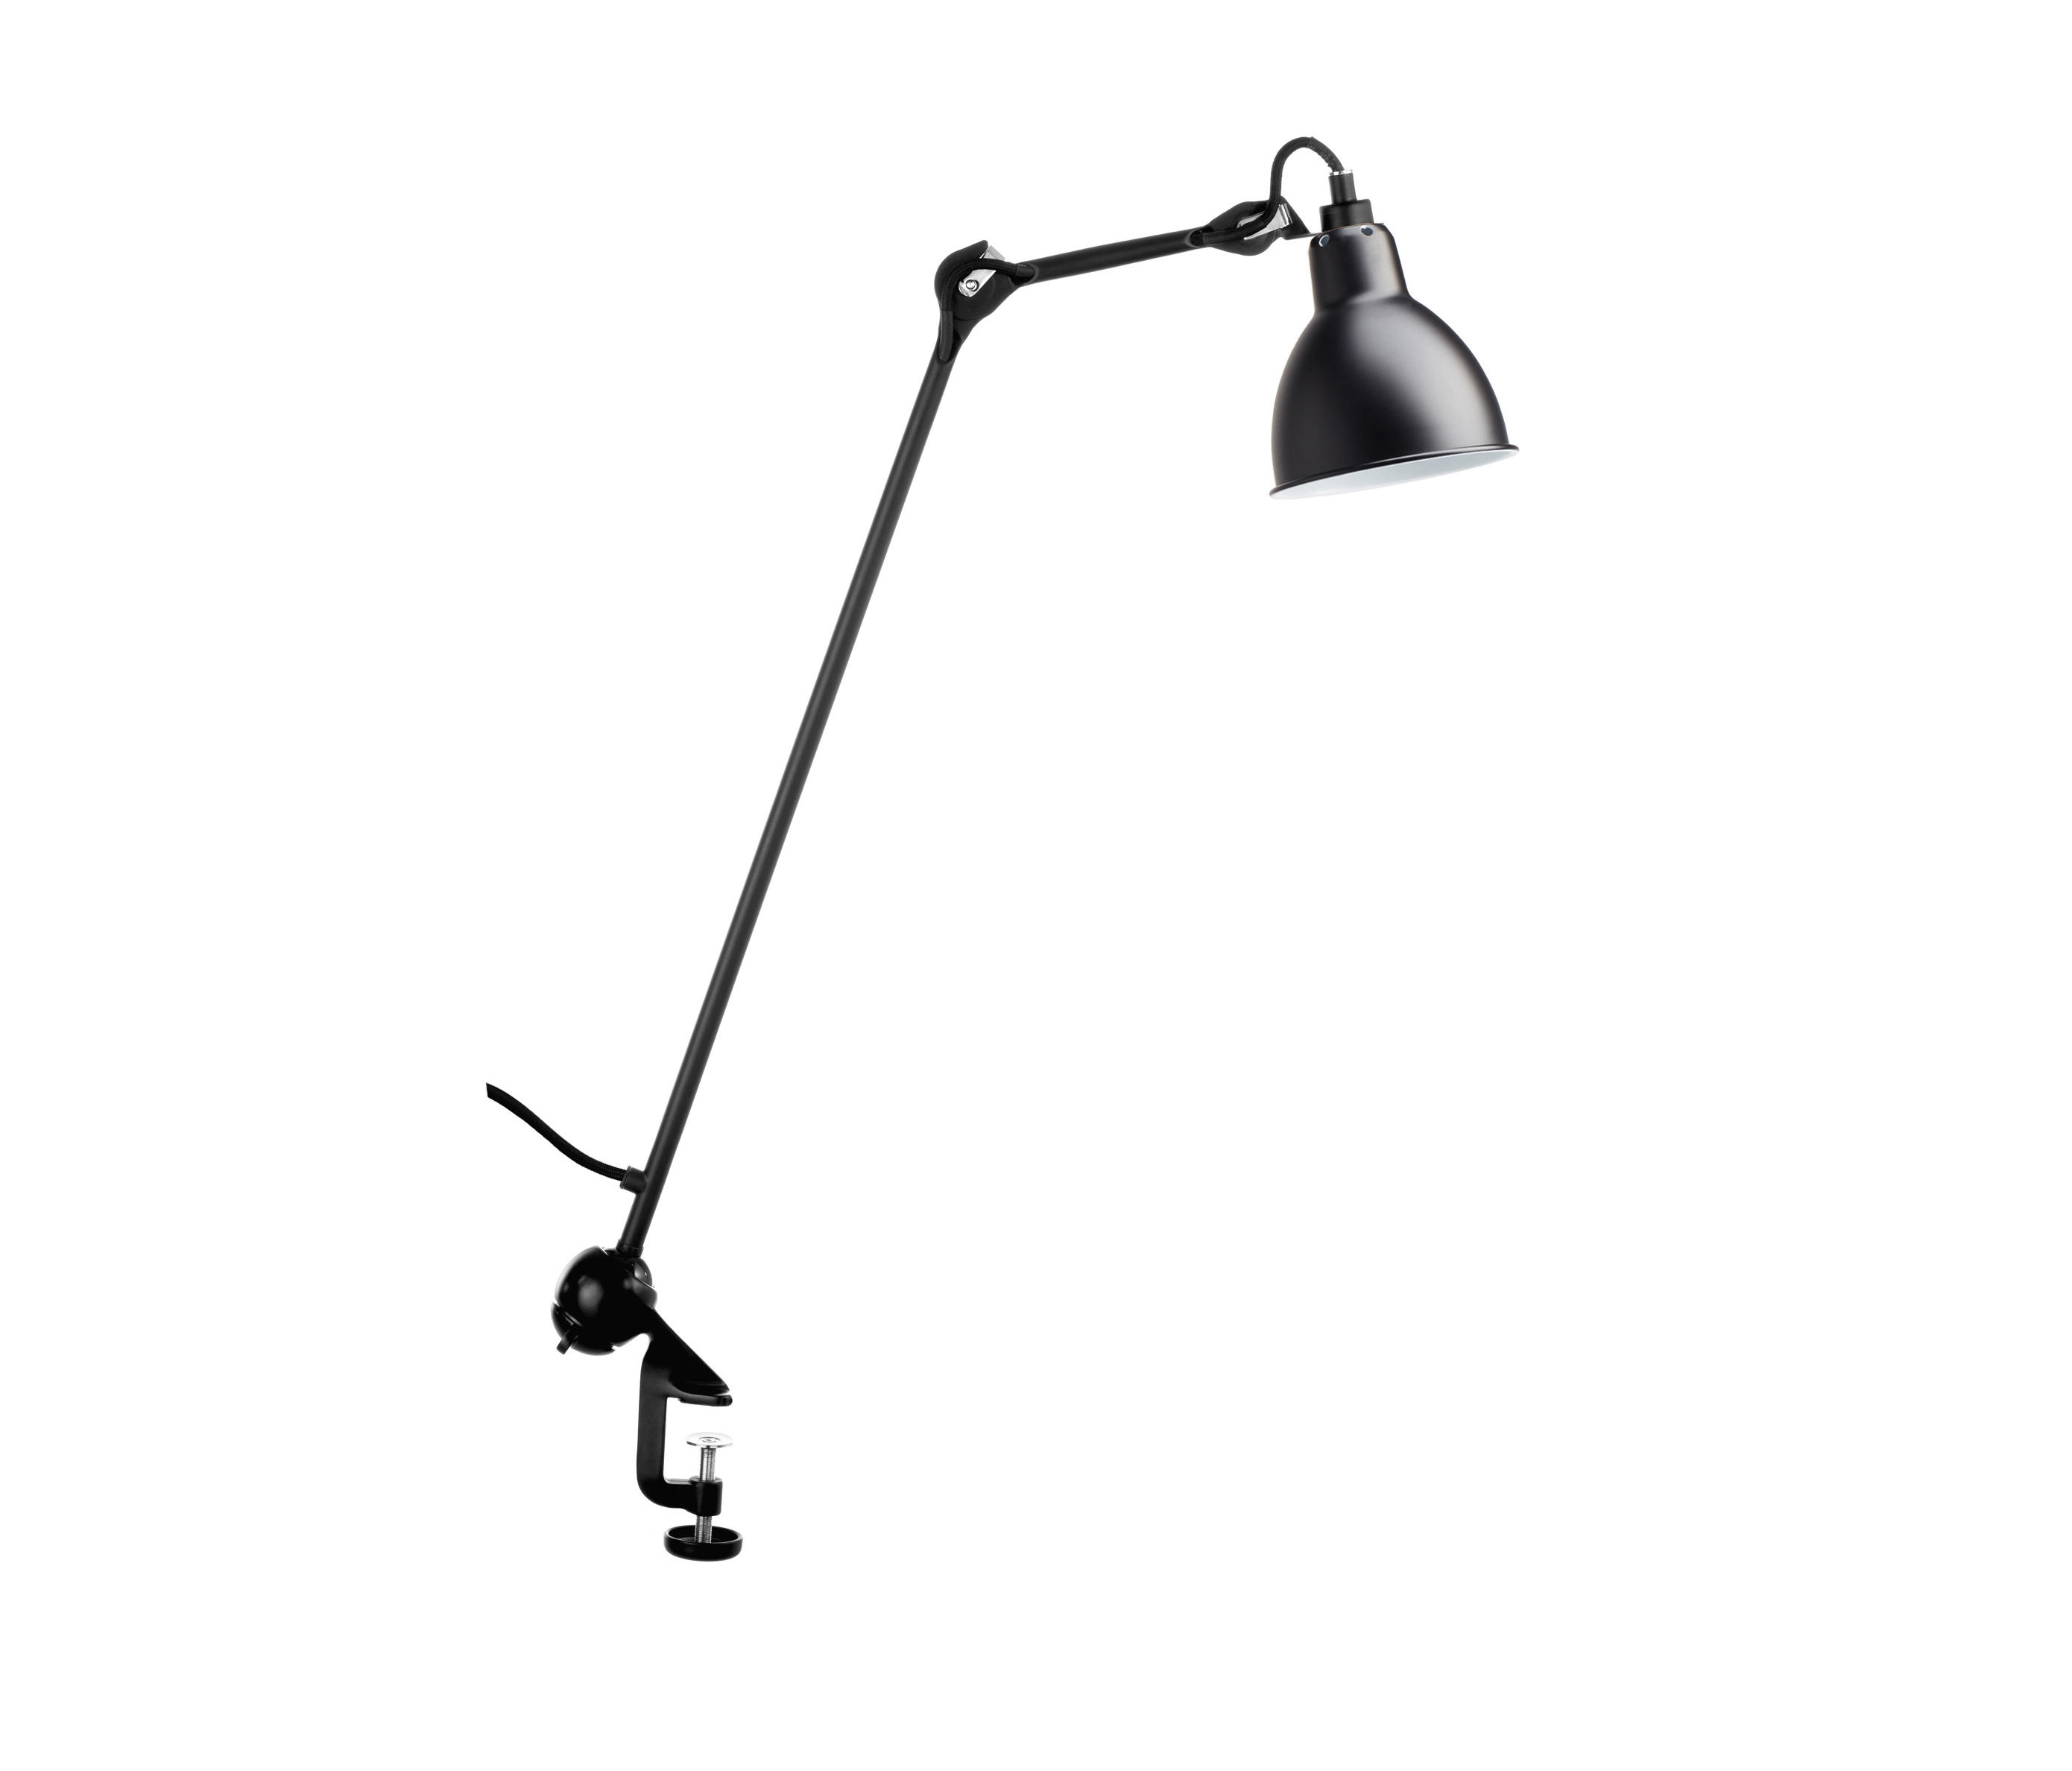 Lampe N Lampe Gras N201 Black Table Lights From Dcw éditions Architonic